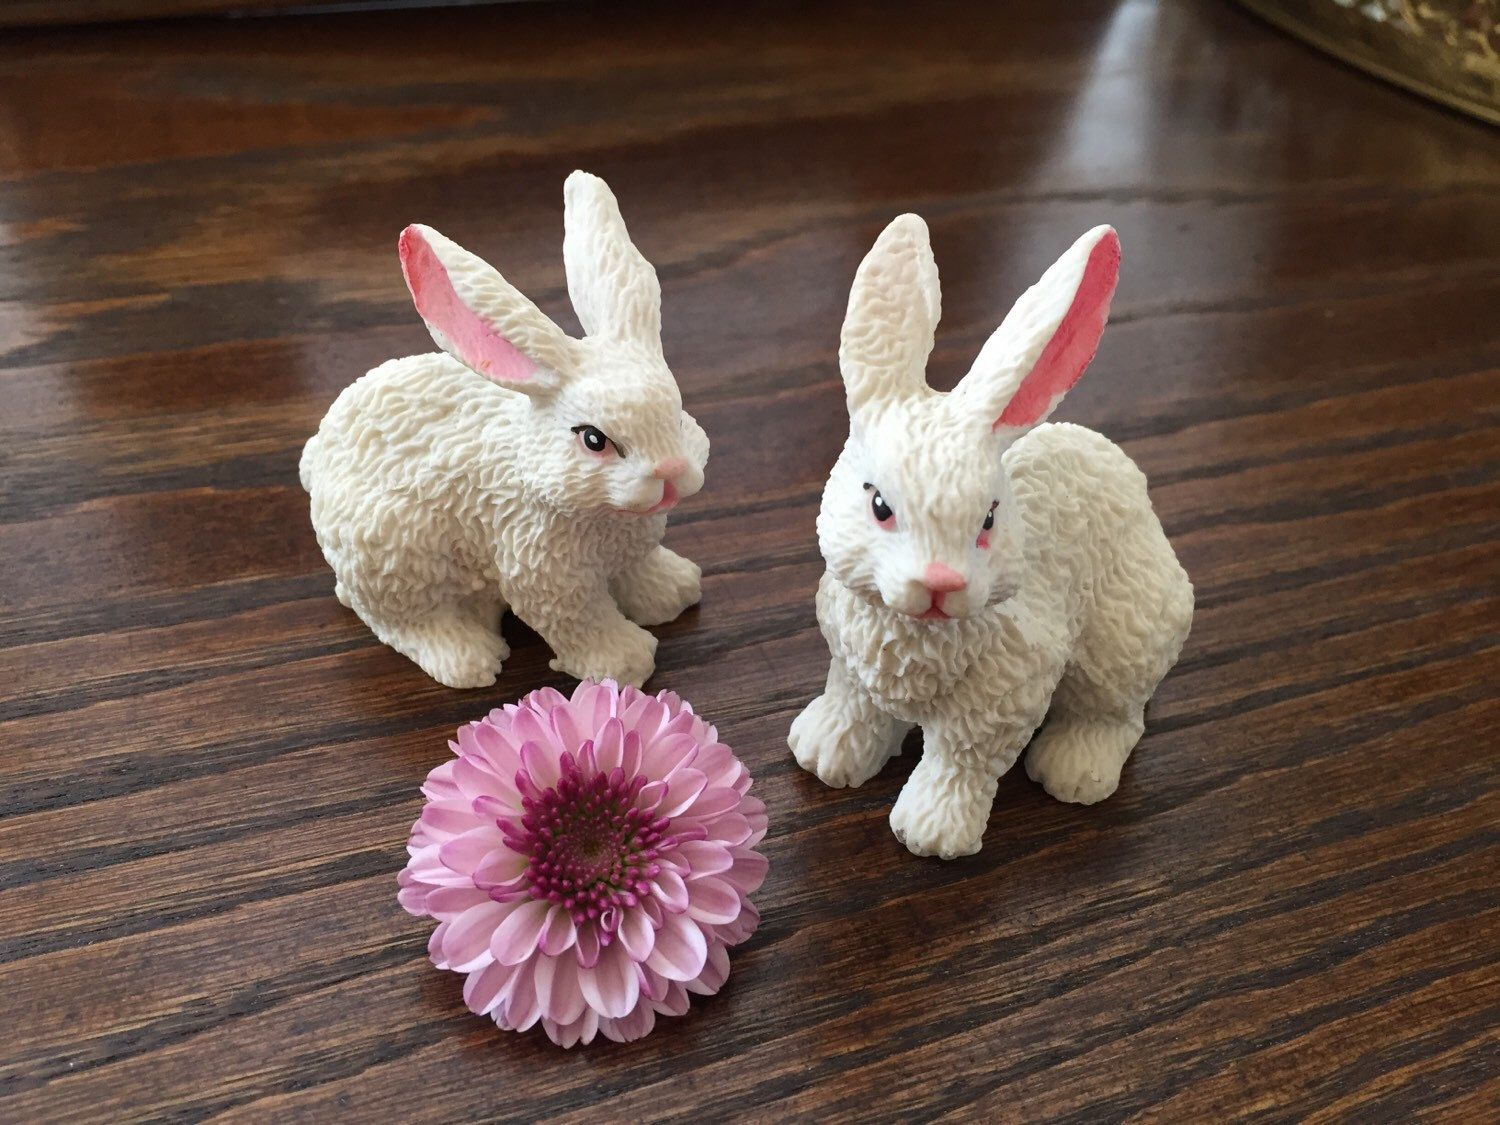 Vintage Bunny Tabbits ~ Pair ~ Easter by TheMintBoutique on Etsy https://www.etsy.com/listing/265086882/vintage-bunny-tabbits-pair-easter